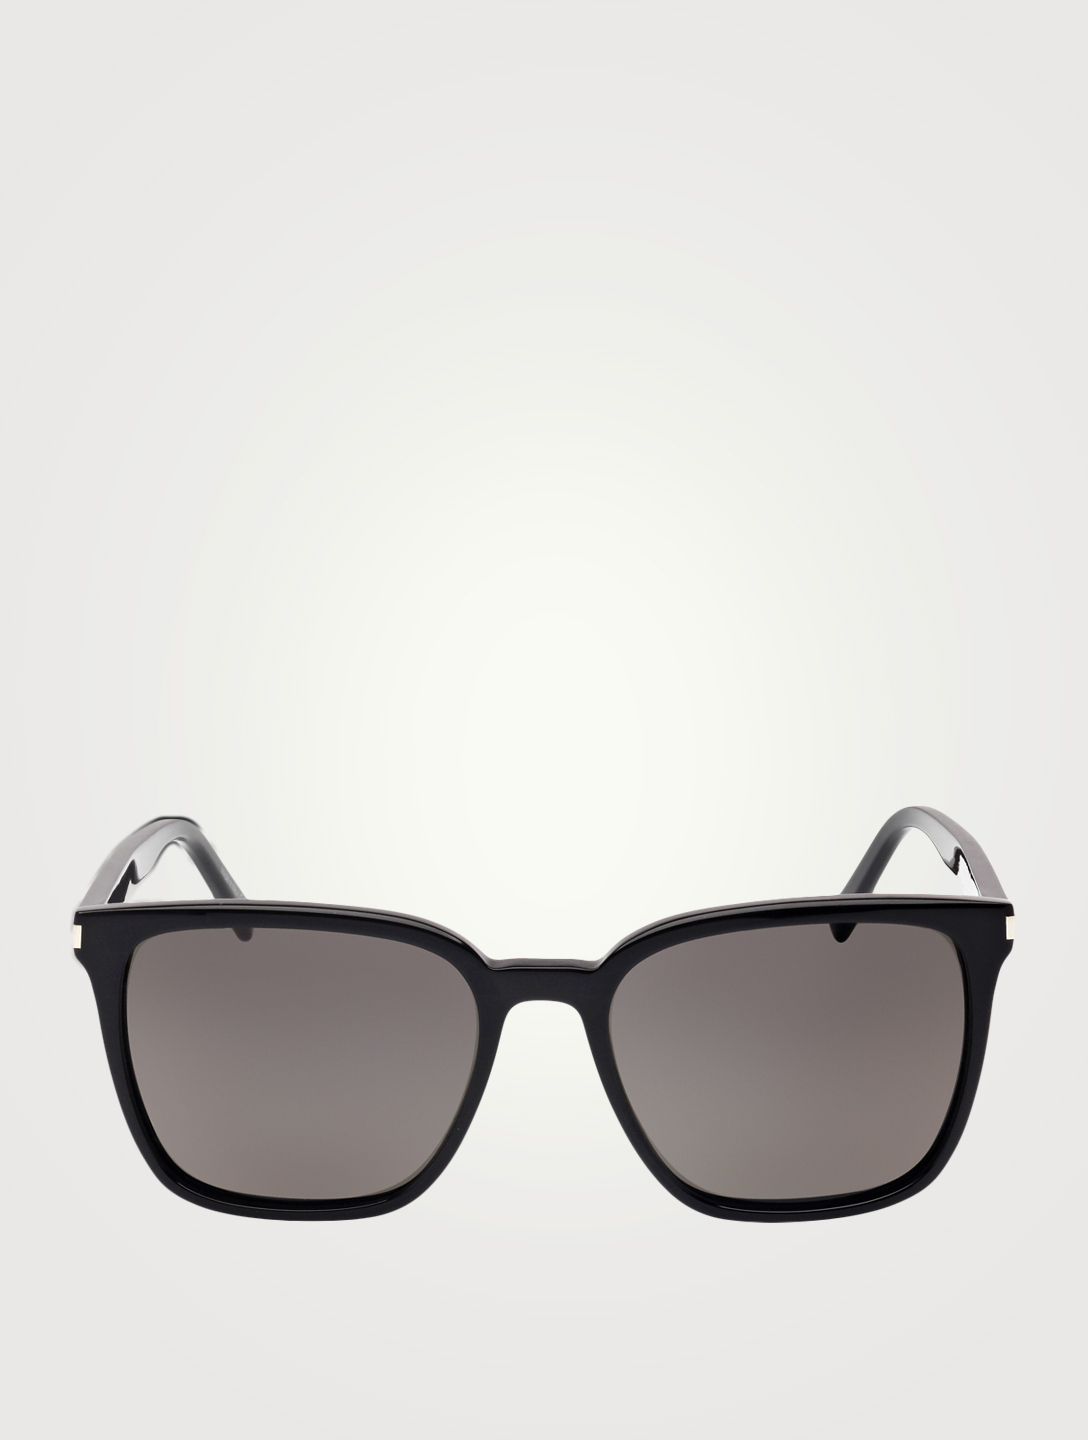 SAINT LAURENT SL 93 Square Sunglasses Men's Black